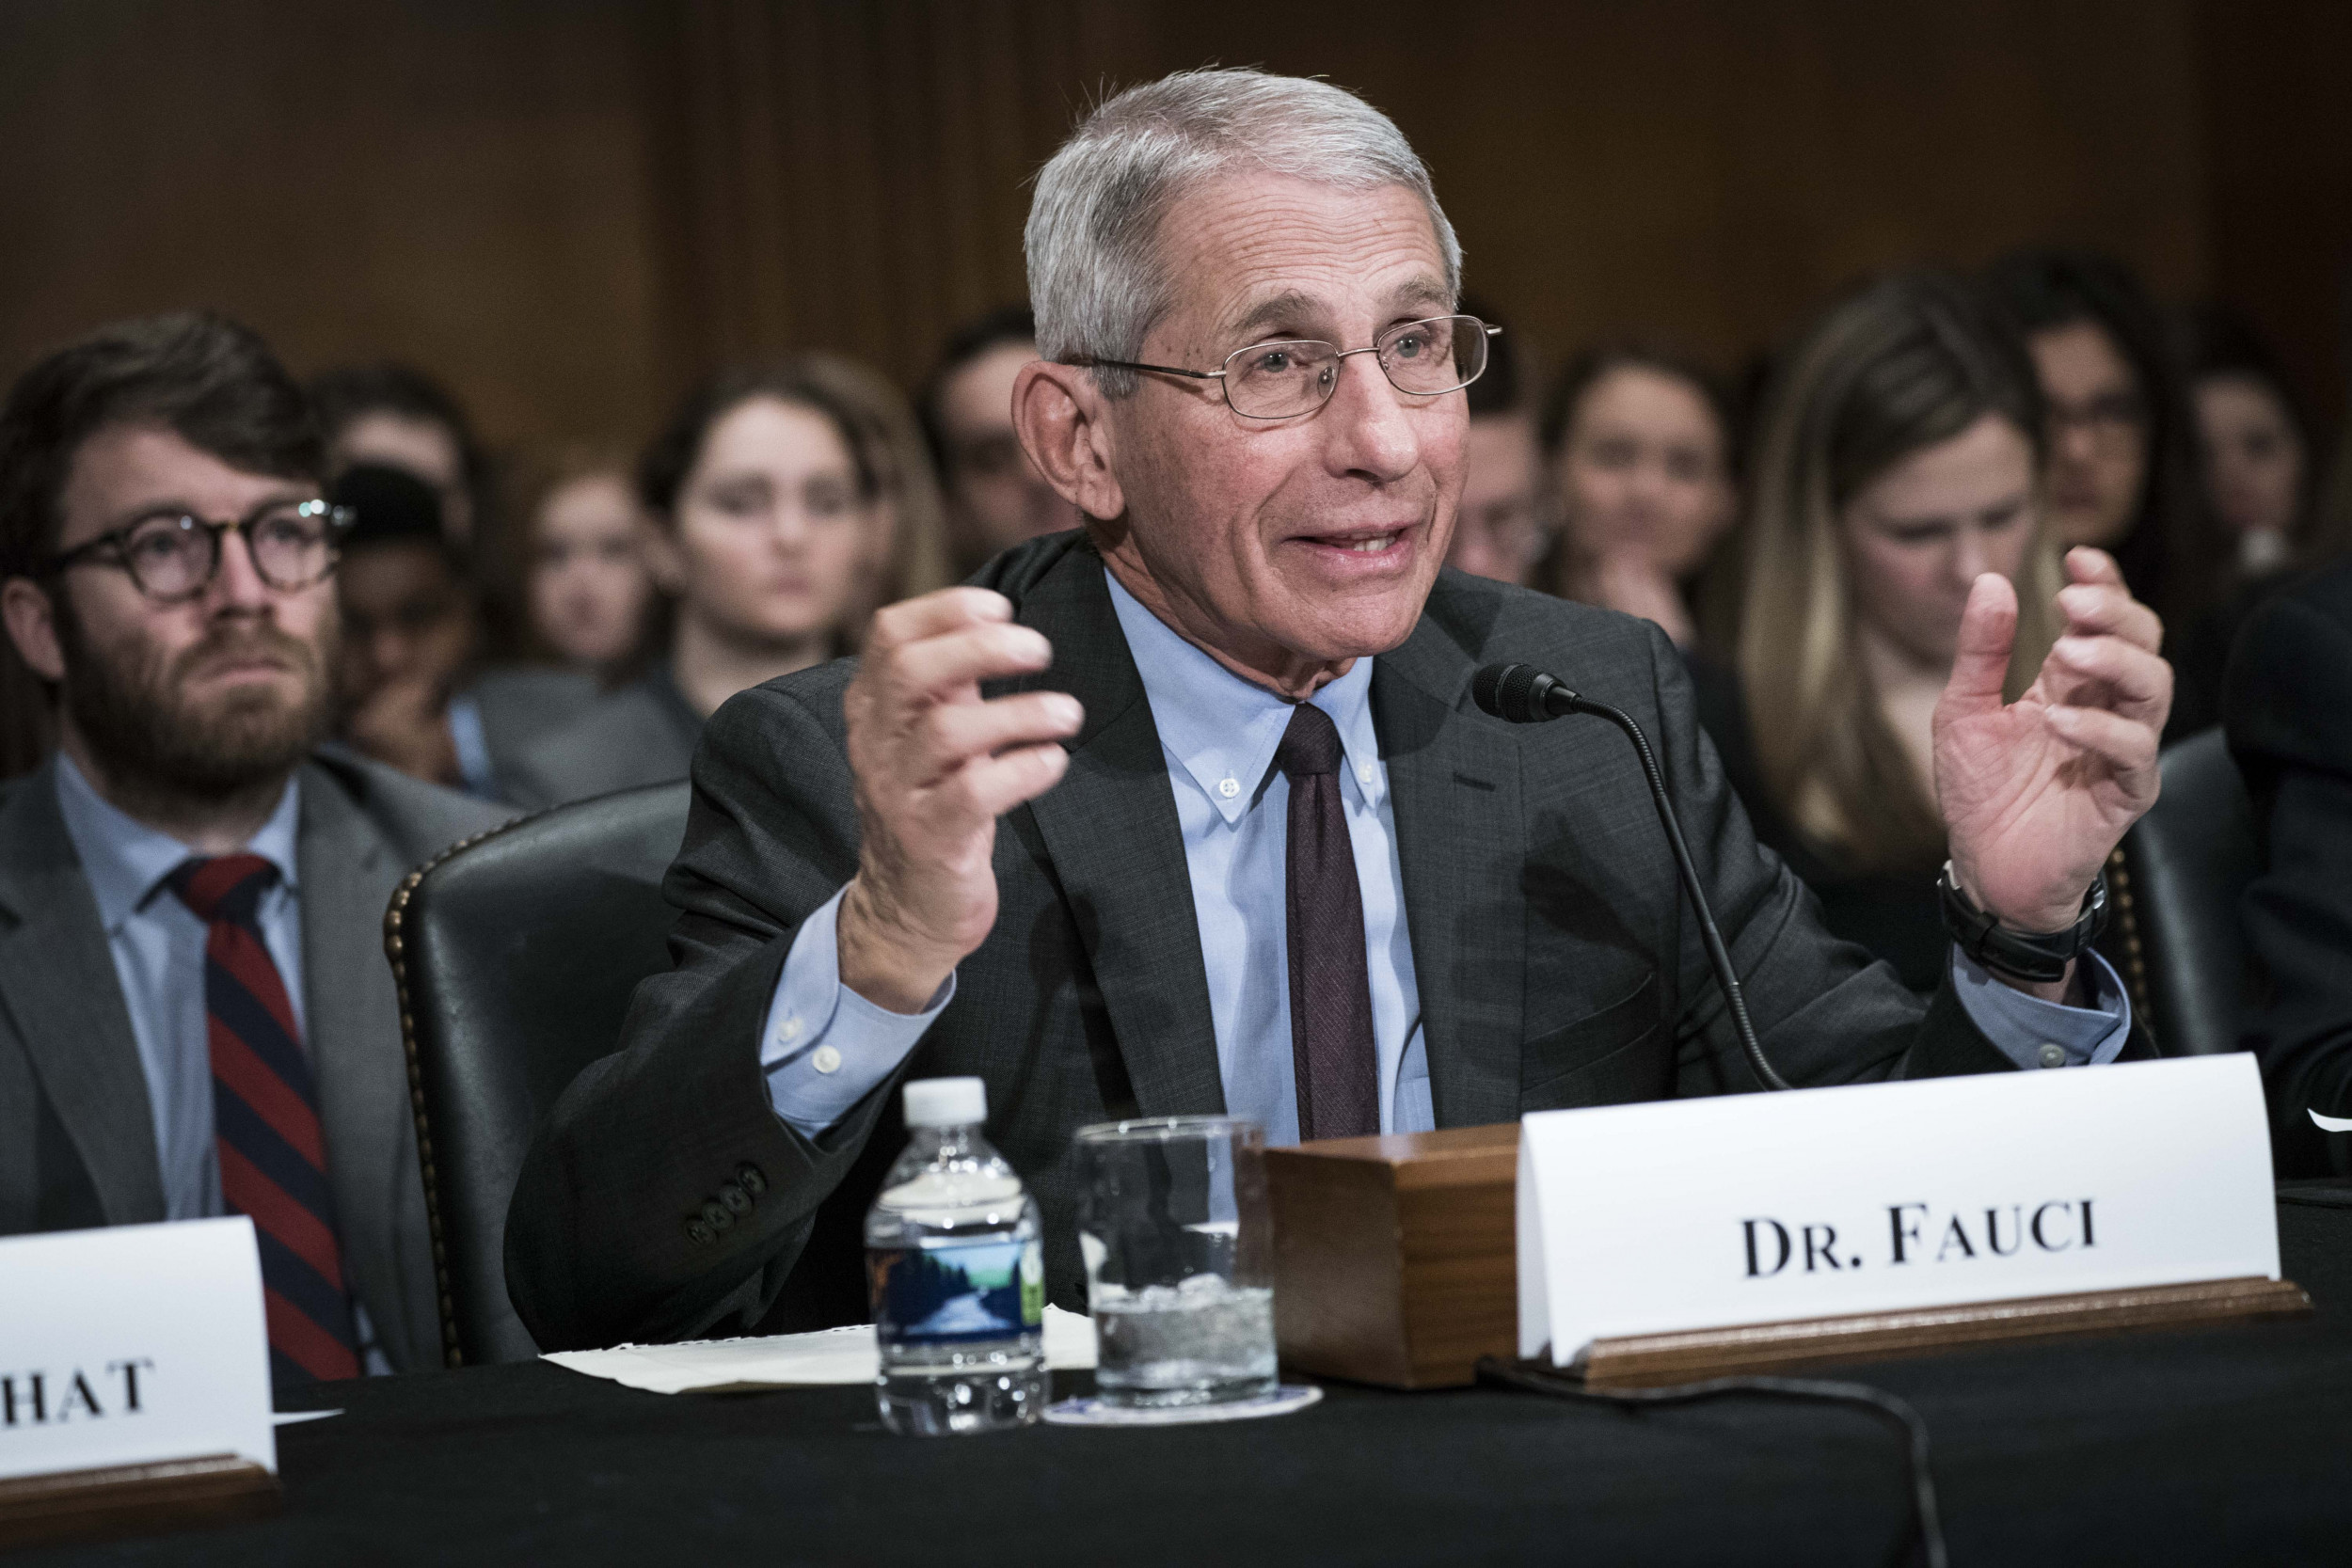 Fauci Says 'Many' Coronavirus Vaccines Being Tested, But ...